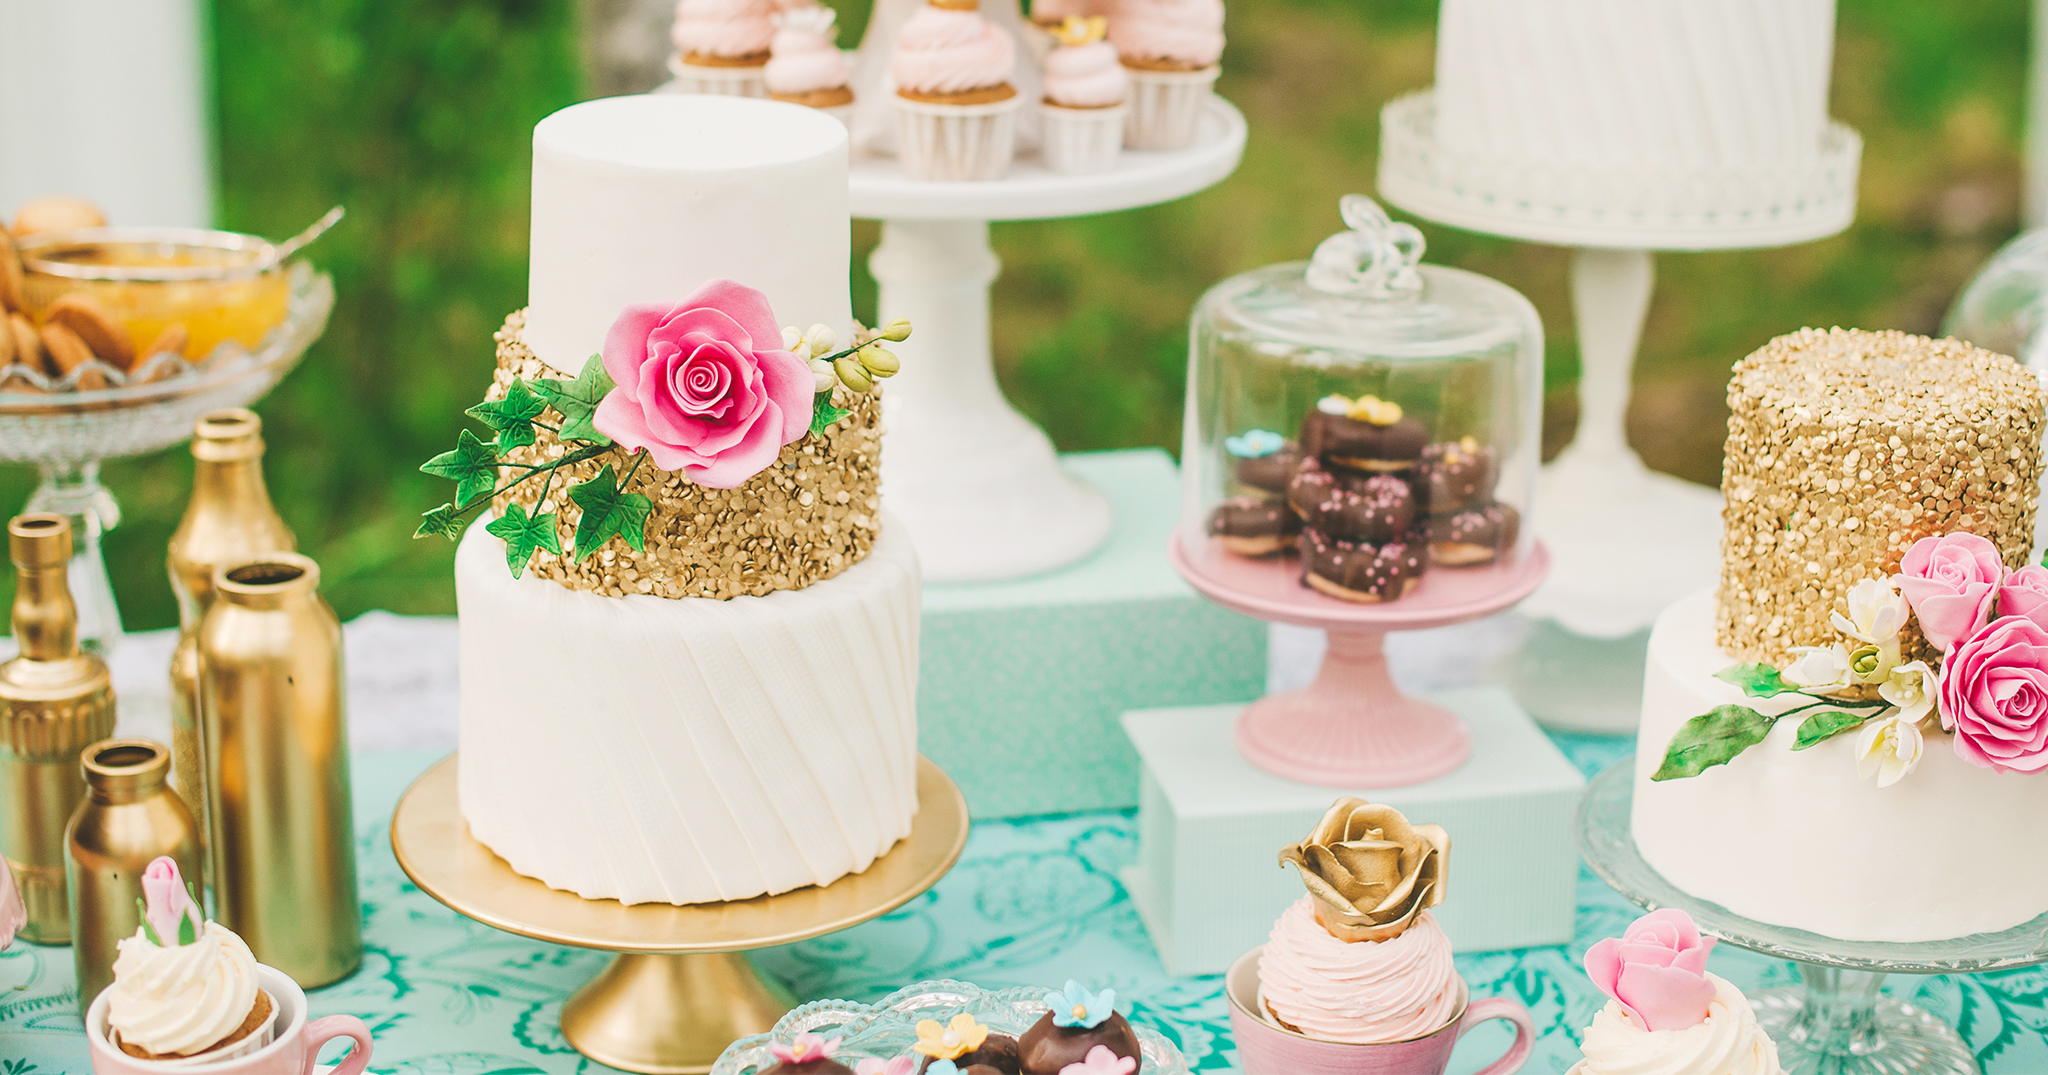 BridalPulse: The Wedding Cake Trends You Need to Know About   Photography By: Suárez Bakery   Follow @BridalPulse for more wedding inspiration!BridalPulse: The Wedding Cake Trends You Need to Know About   Follow @BridalPulse for more wedding inspiration!